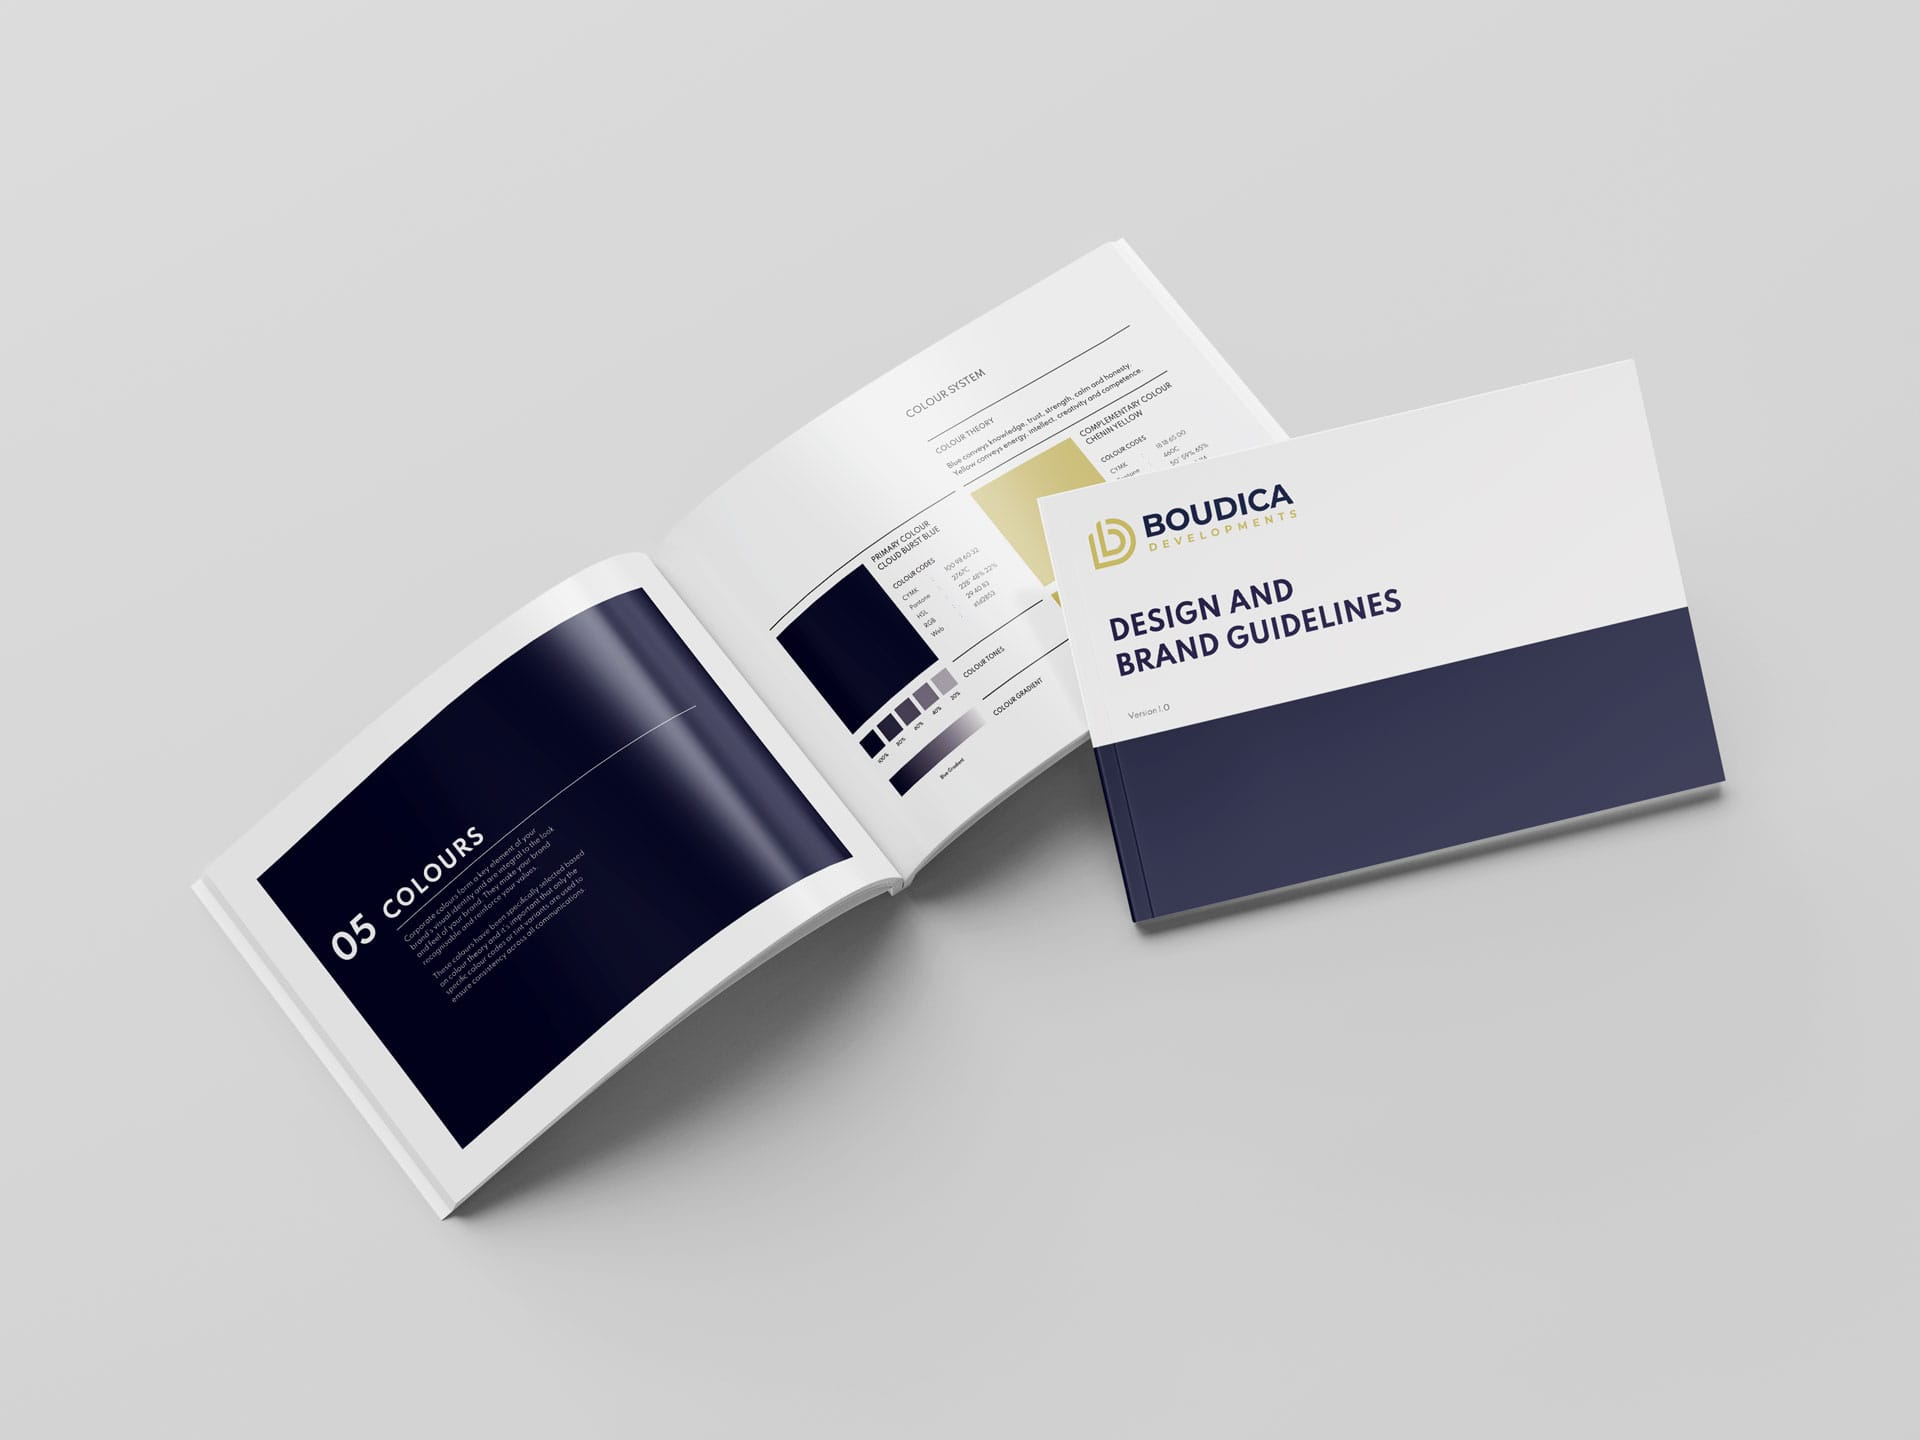 Boudica Developments Design and Brand Guidelines Document